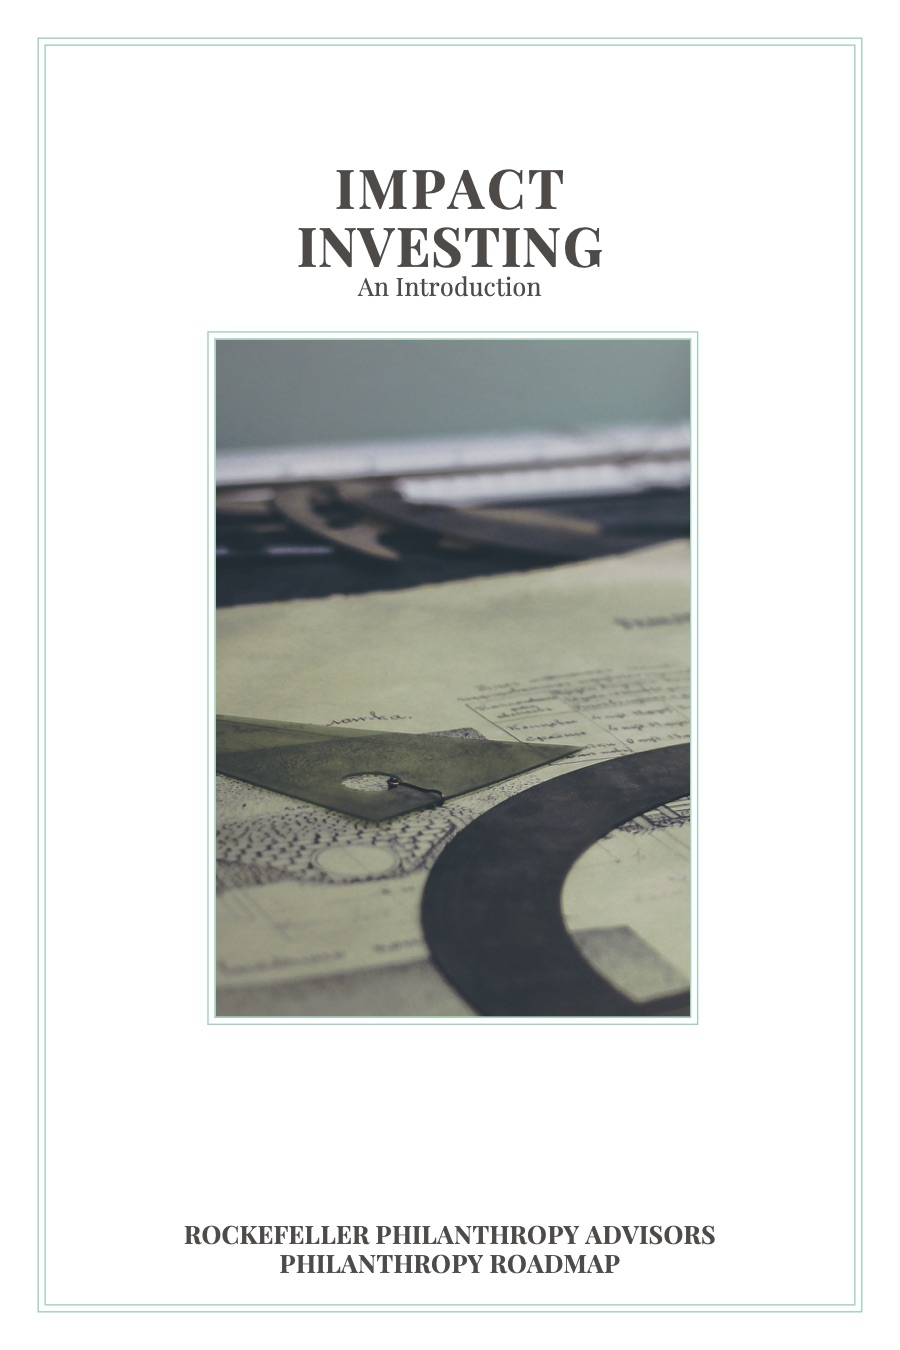 Impact Investing by Rockefeller Philanthropy Advisors